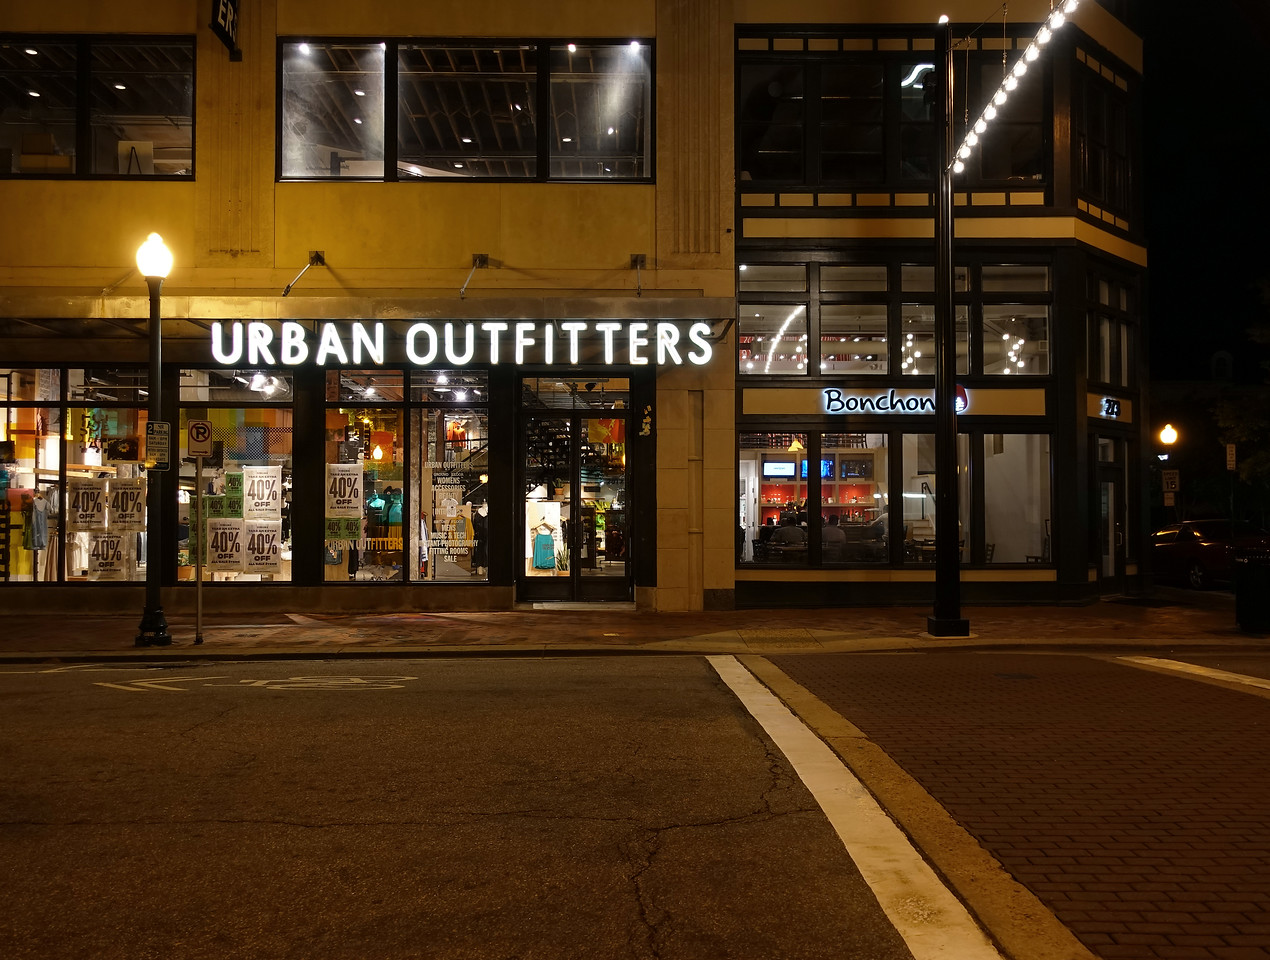 Urban Outfitters & Bonchon Restaurant